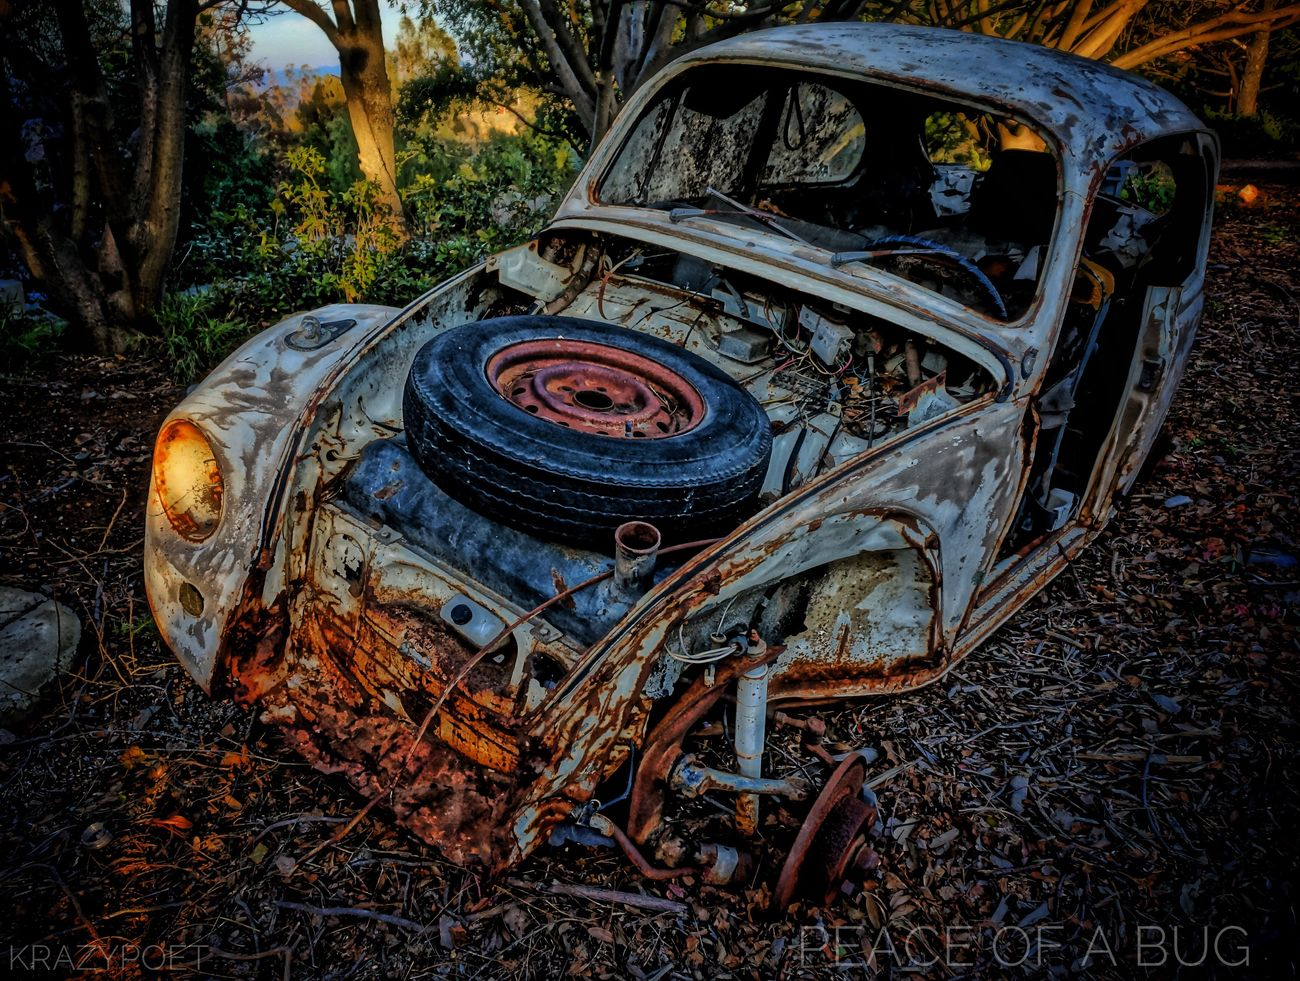 ||Peace of a Bug|| #bug #vw #vwbeetle #hdrart #peace #atpeace #peaceofabug HDR VW Peace Vwbettle Hdr_Collection Hdrphotography Hdr_lovers Hdr_gallery Hdr_pics Positivity